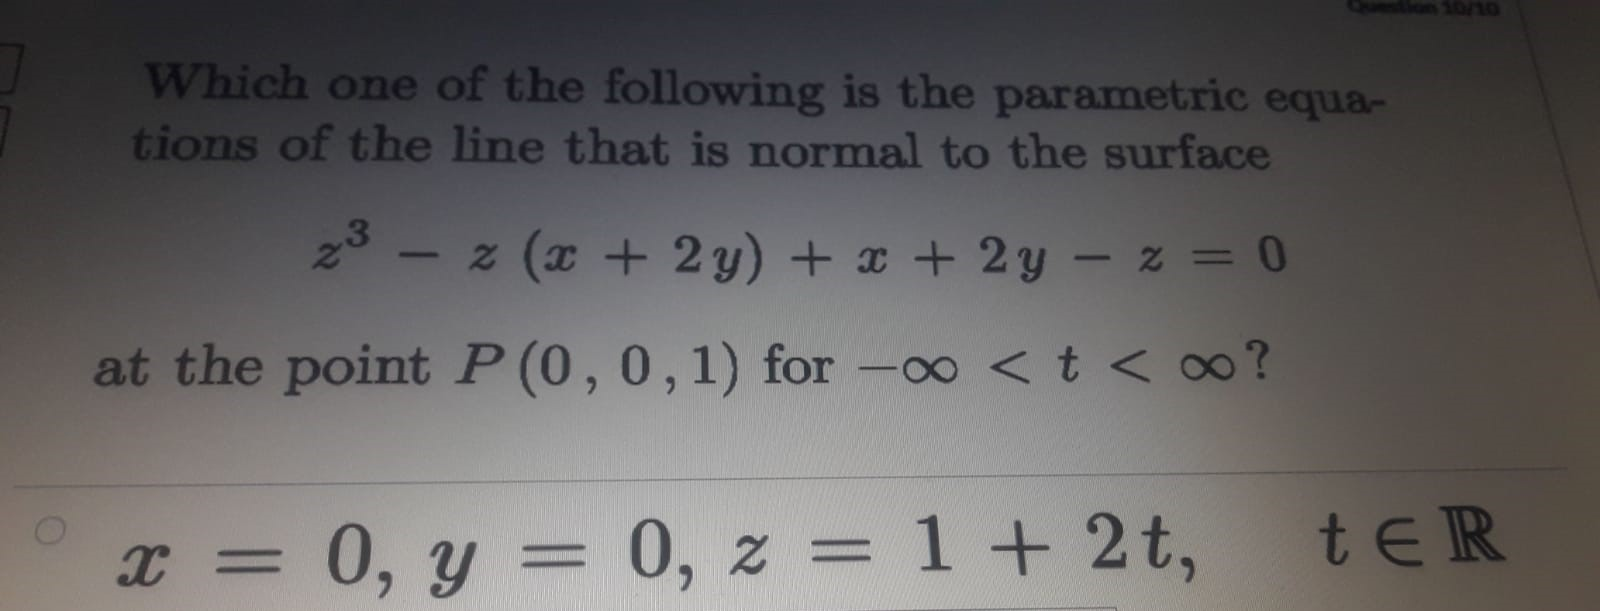 Which one of the following is the parametric equa- tions of the line that is normal to the surface z (x + 2y) + x + 2y - z = 0 at the point P (0,0,1) for -0 <t < ∞?